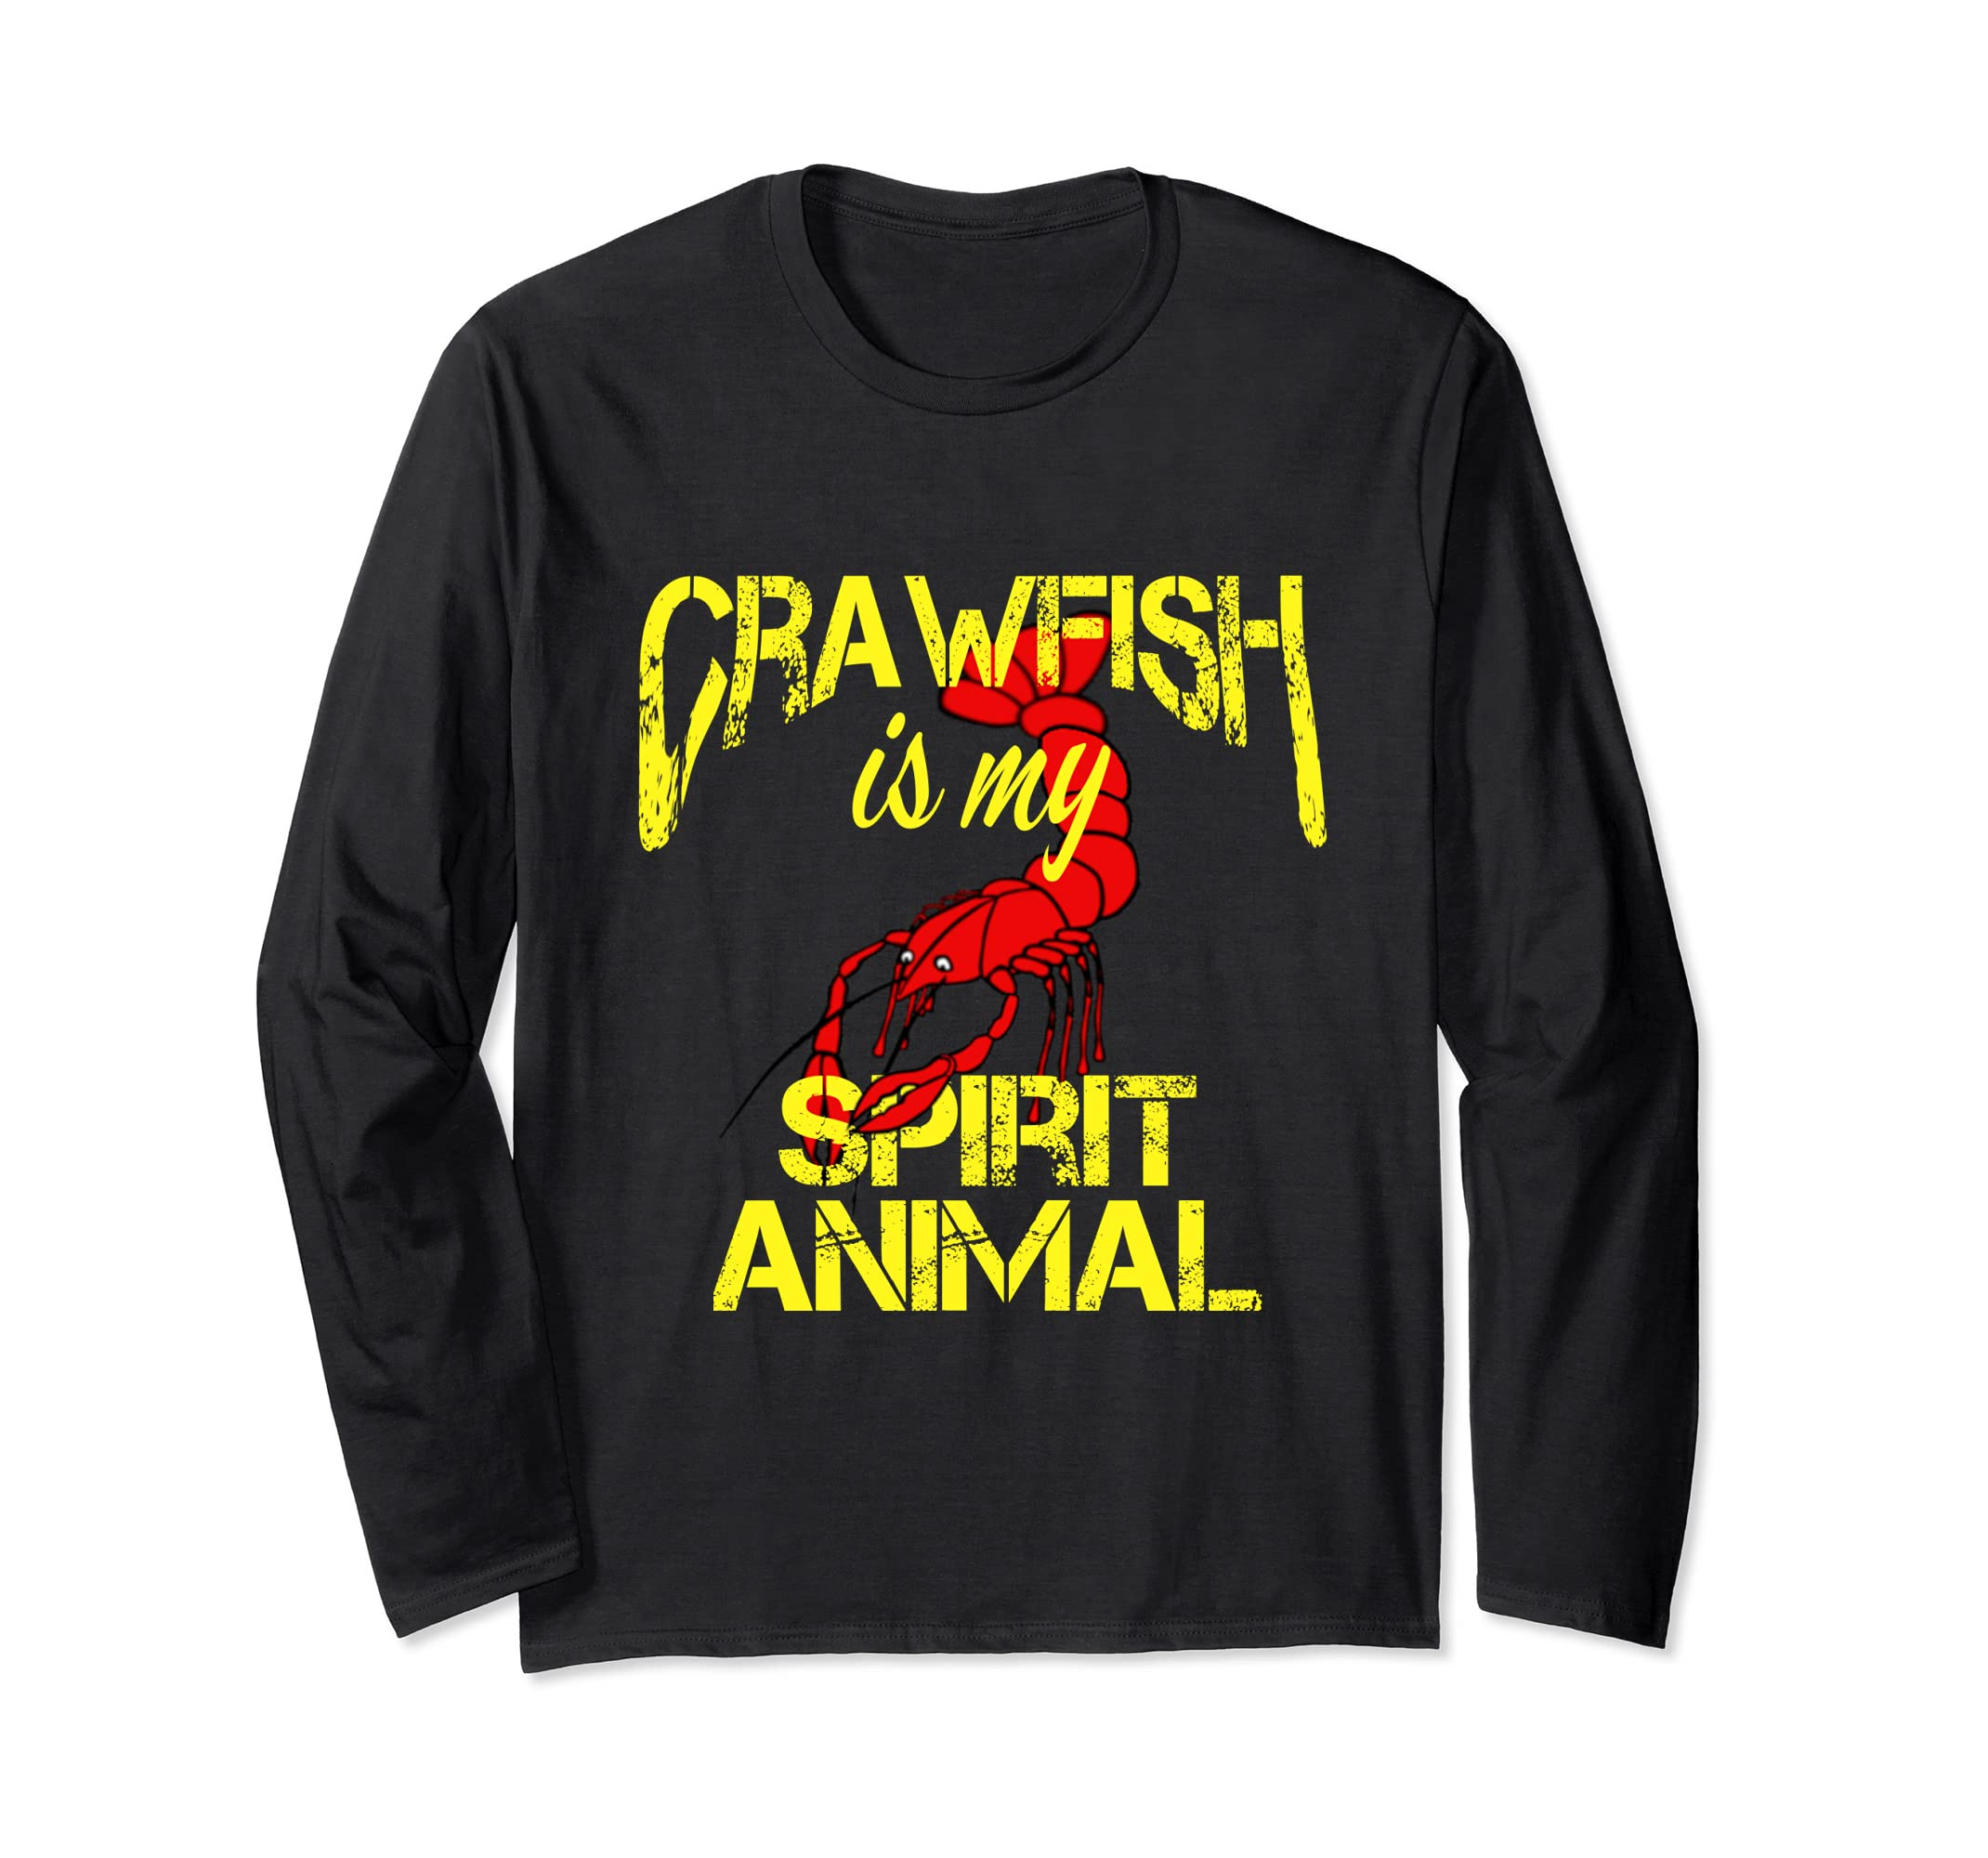 5739087e9e Amazon.com: Funny Crawfish is My Spirit Animal Louisiana Cajun Texas Tee:  Clothing